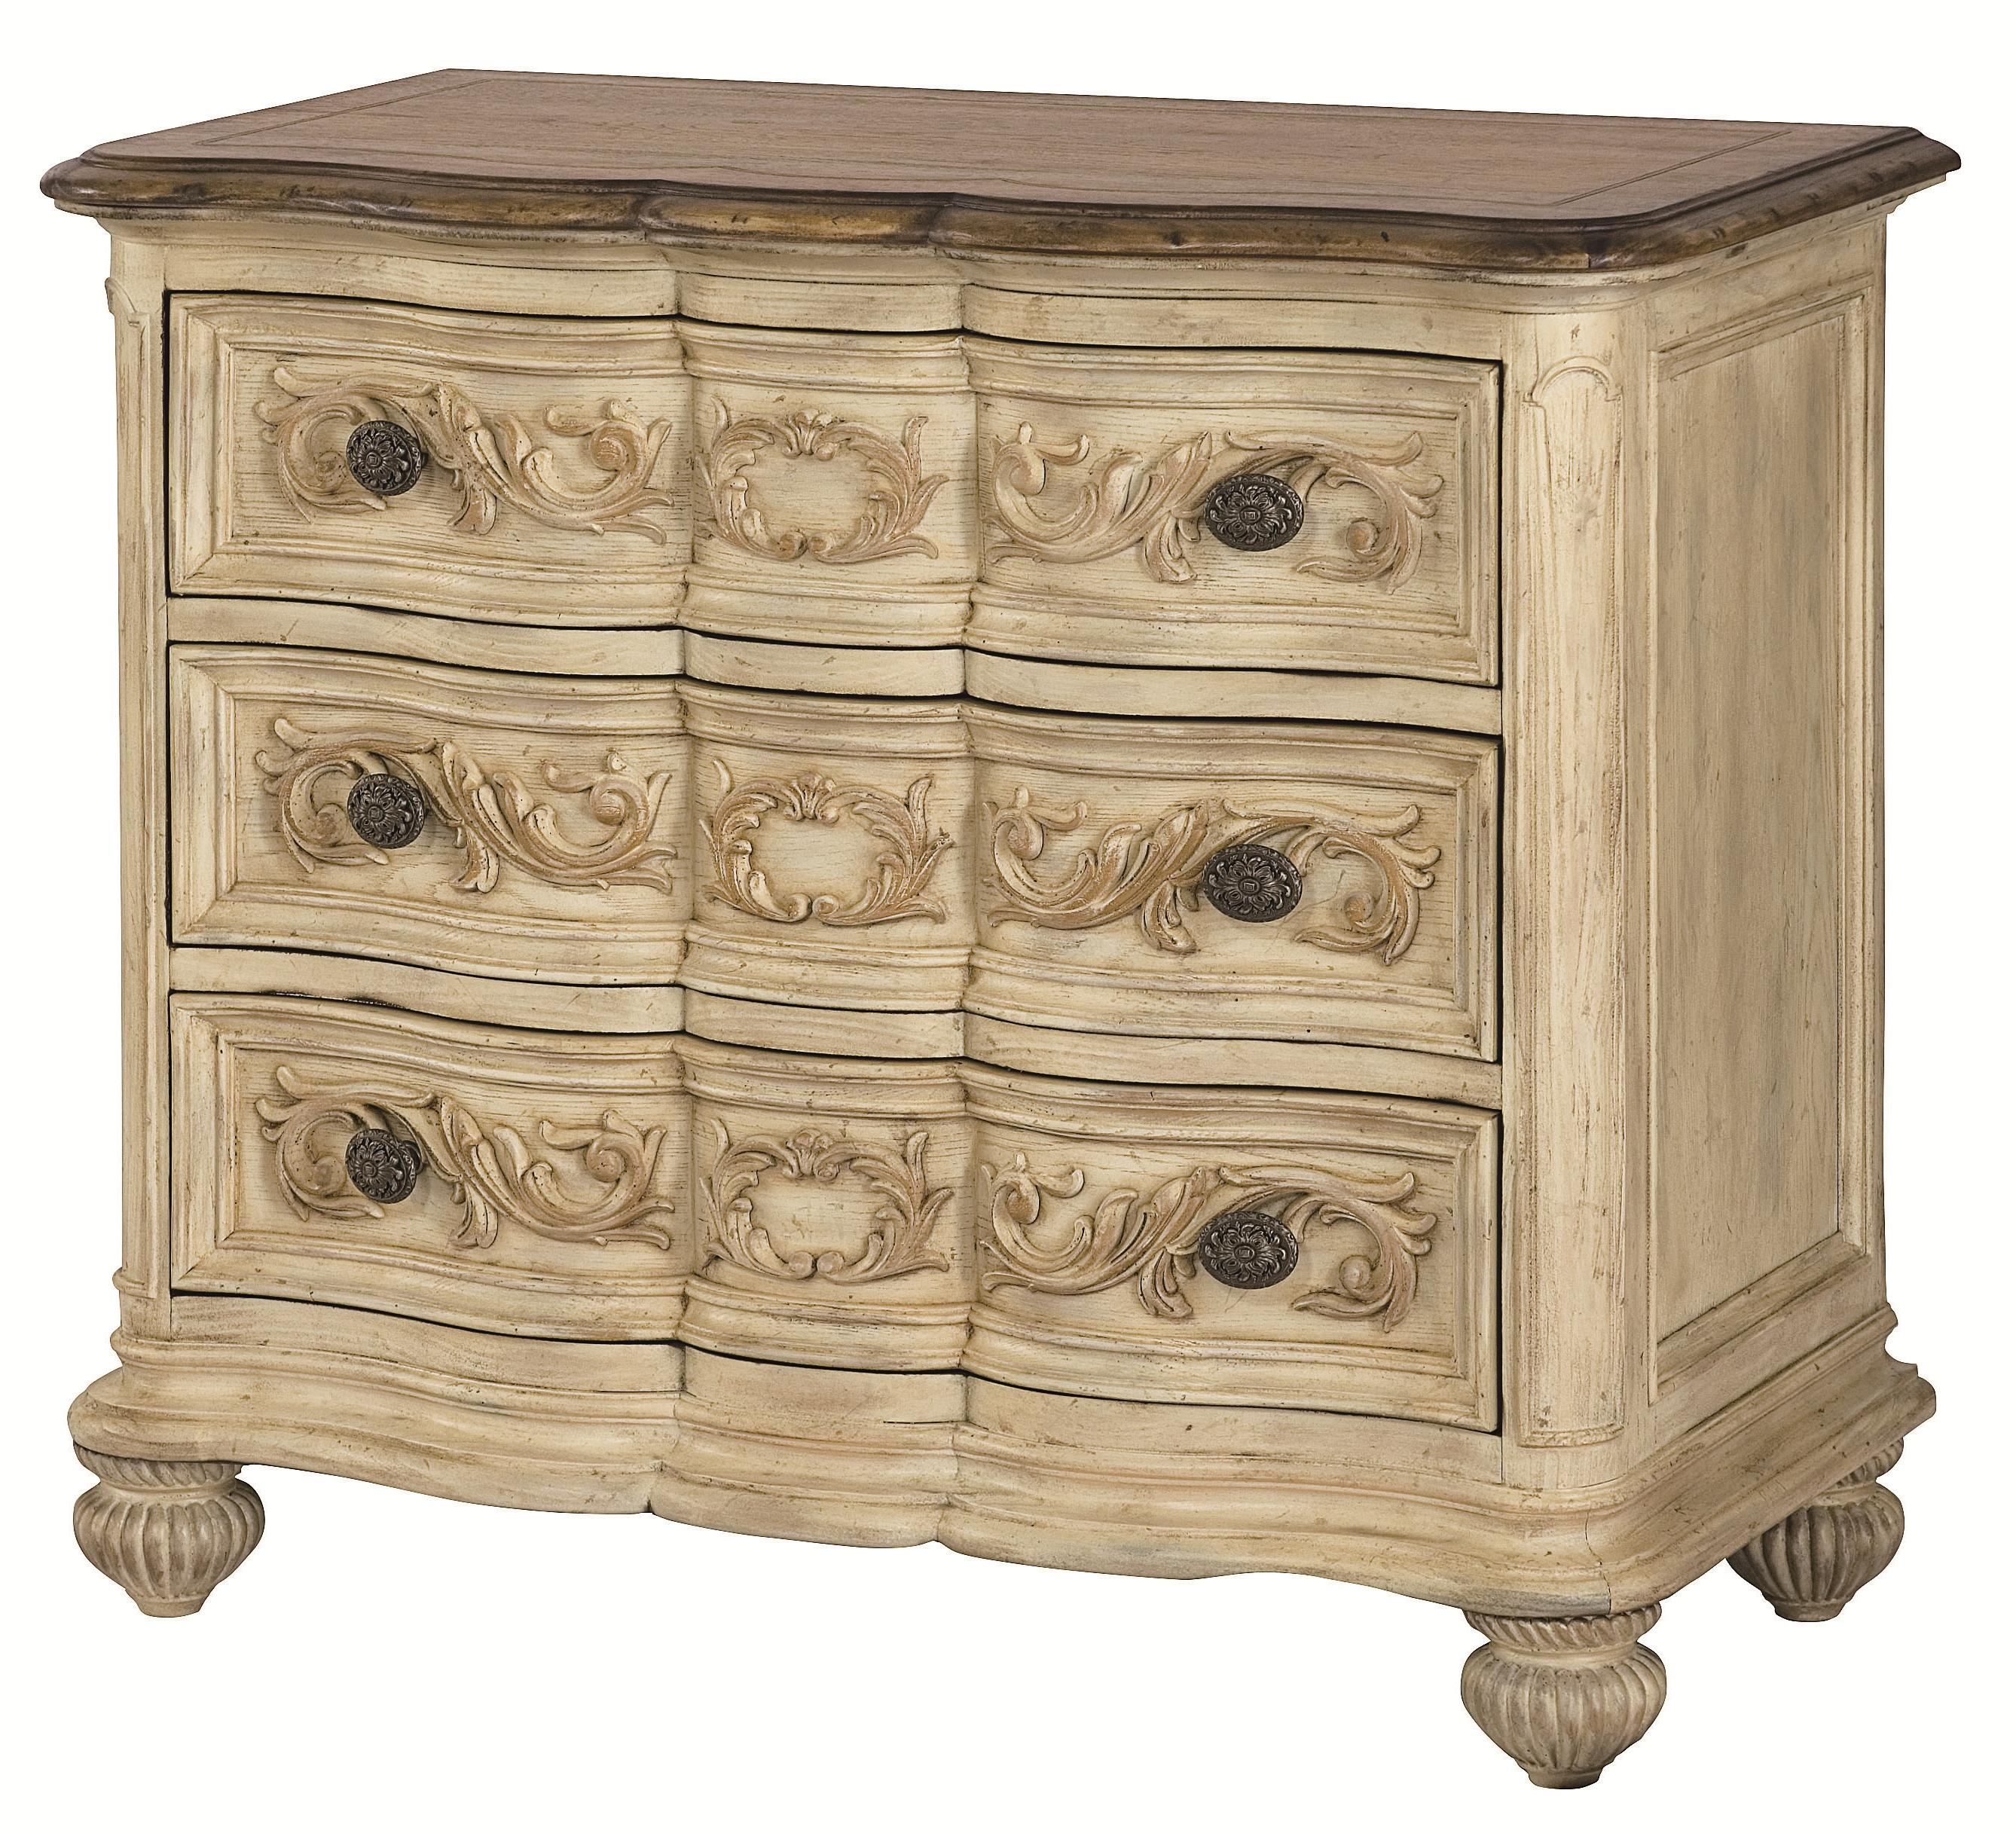 American Drew Jessica McClintock Home   The Boutique Collection Bachelor  Chest   Item Number: 217